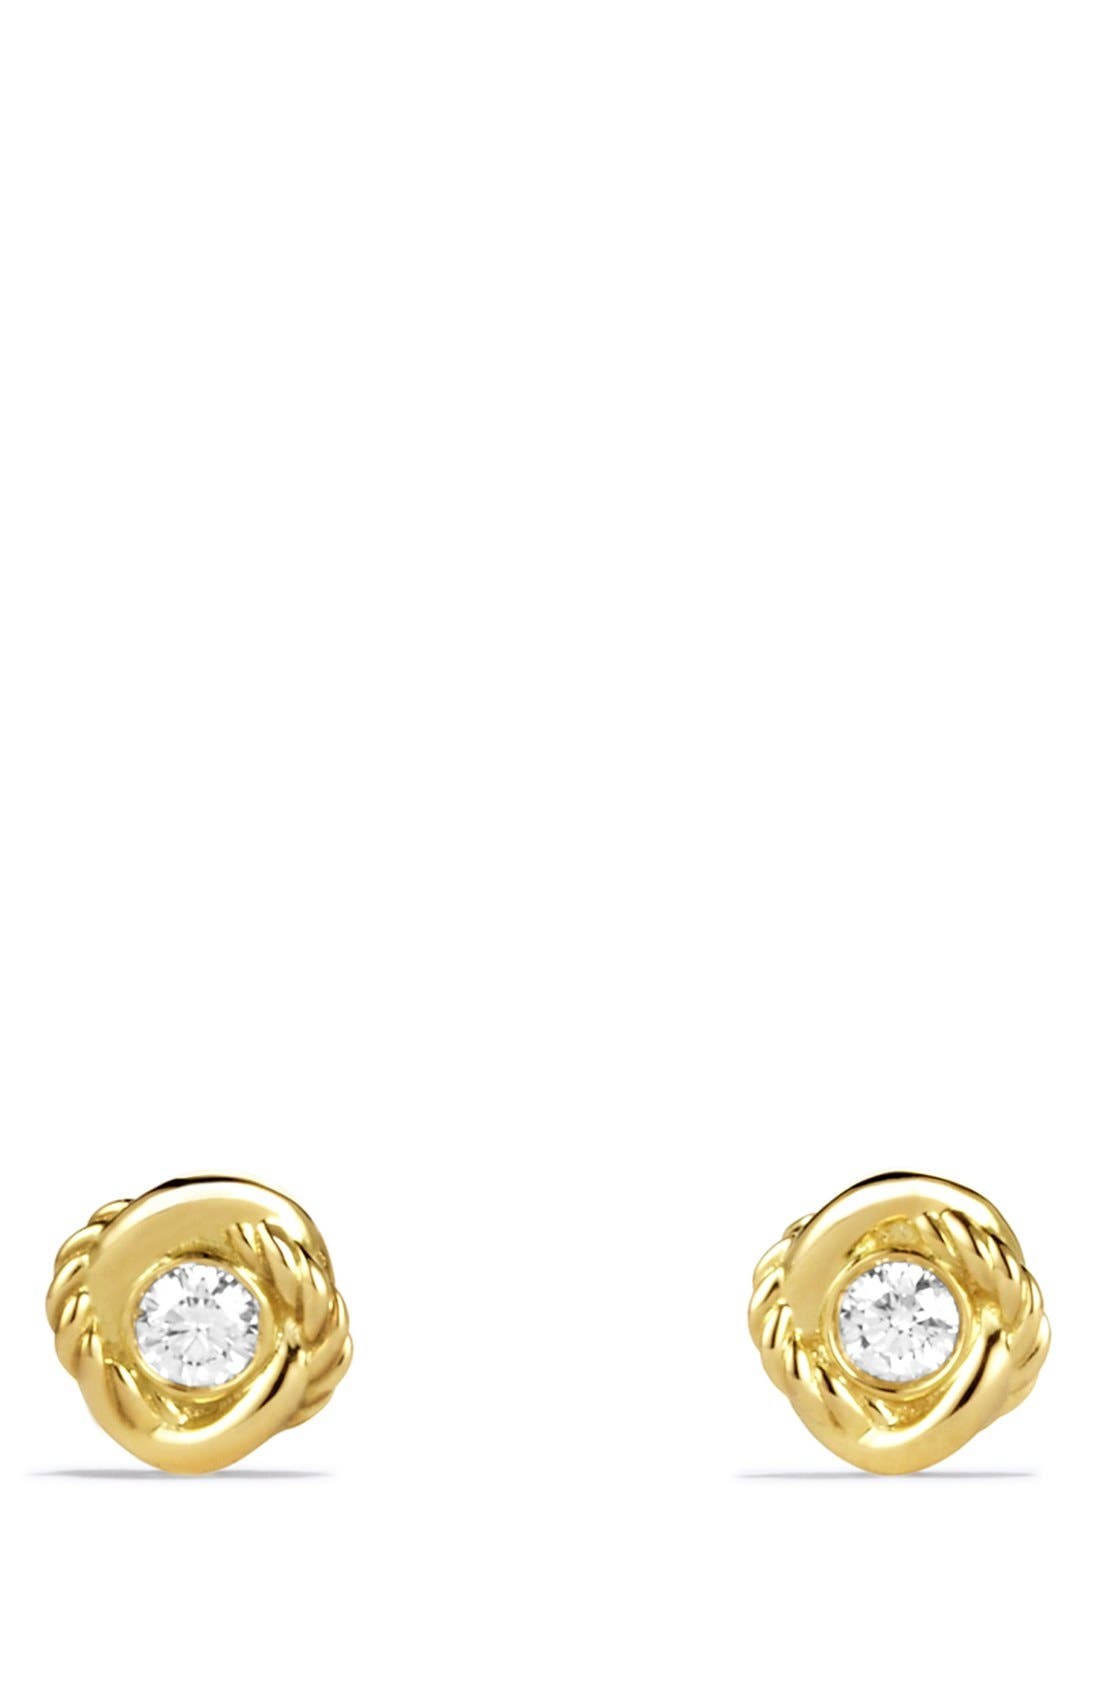 Alternate Image 2  - David Yurman 'Infinity' Earrings with Diamonds in Gold